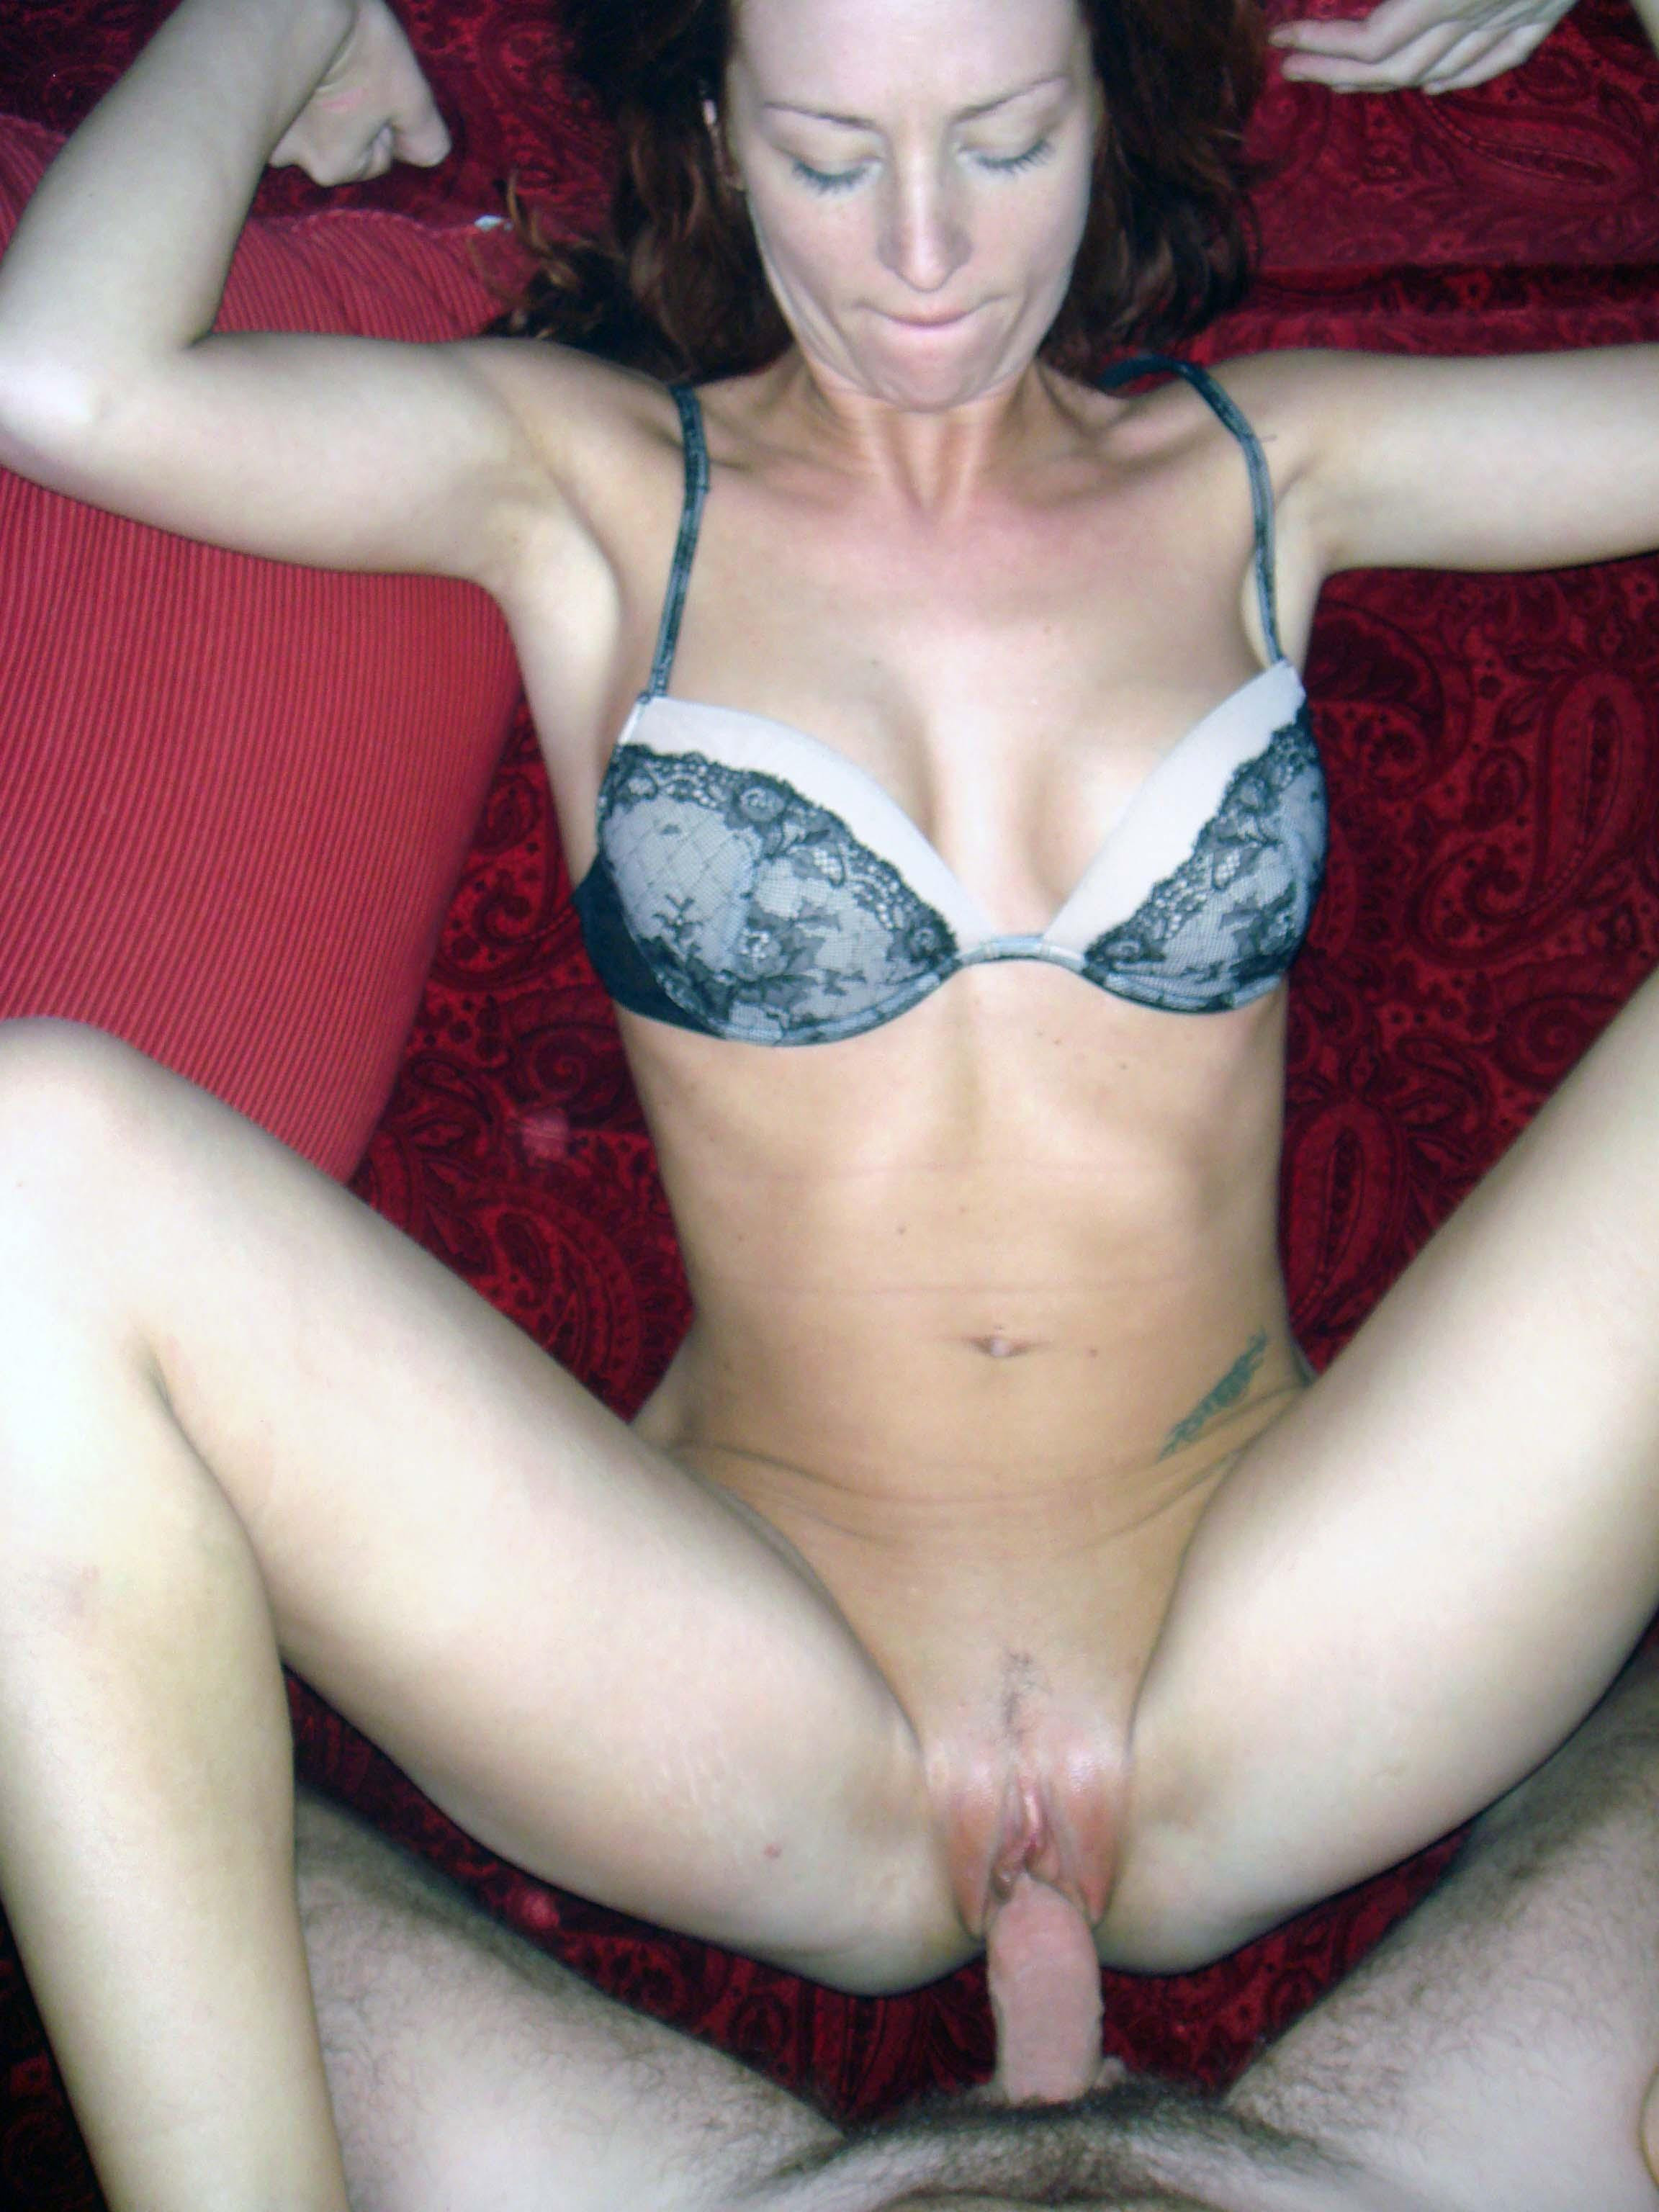 mom fucked son in livingroom